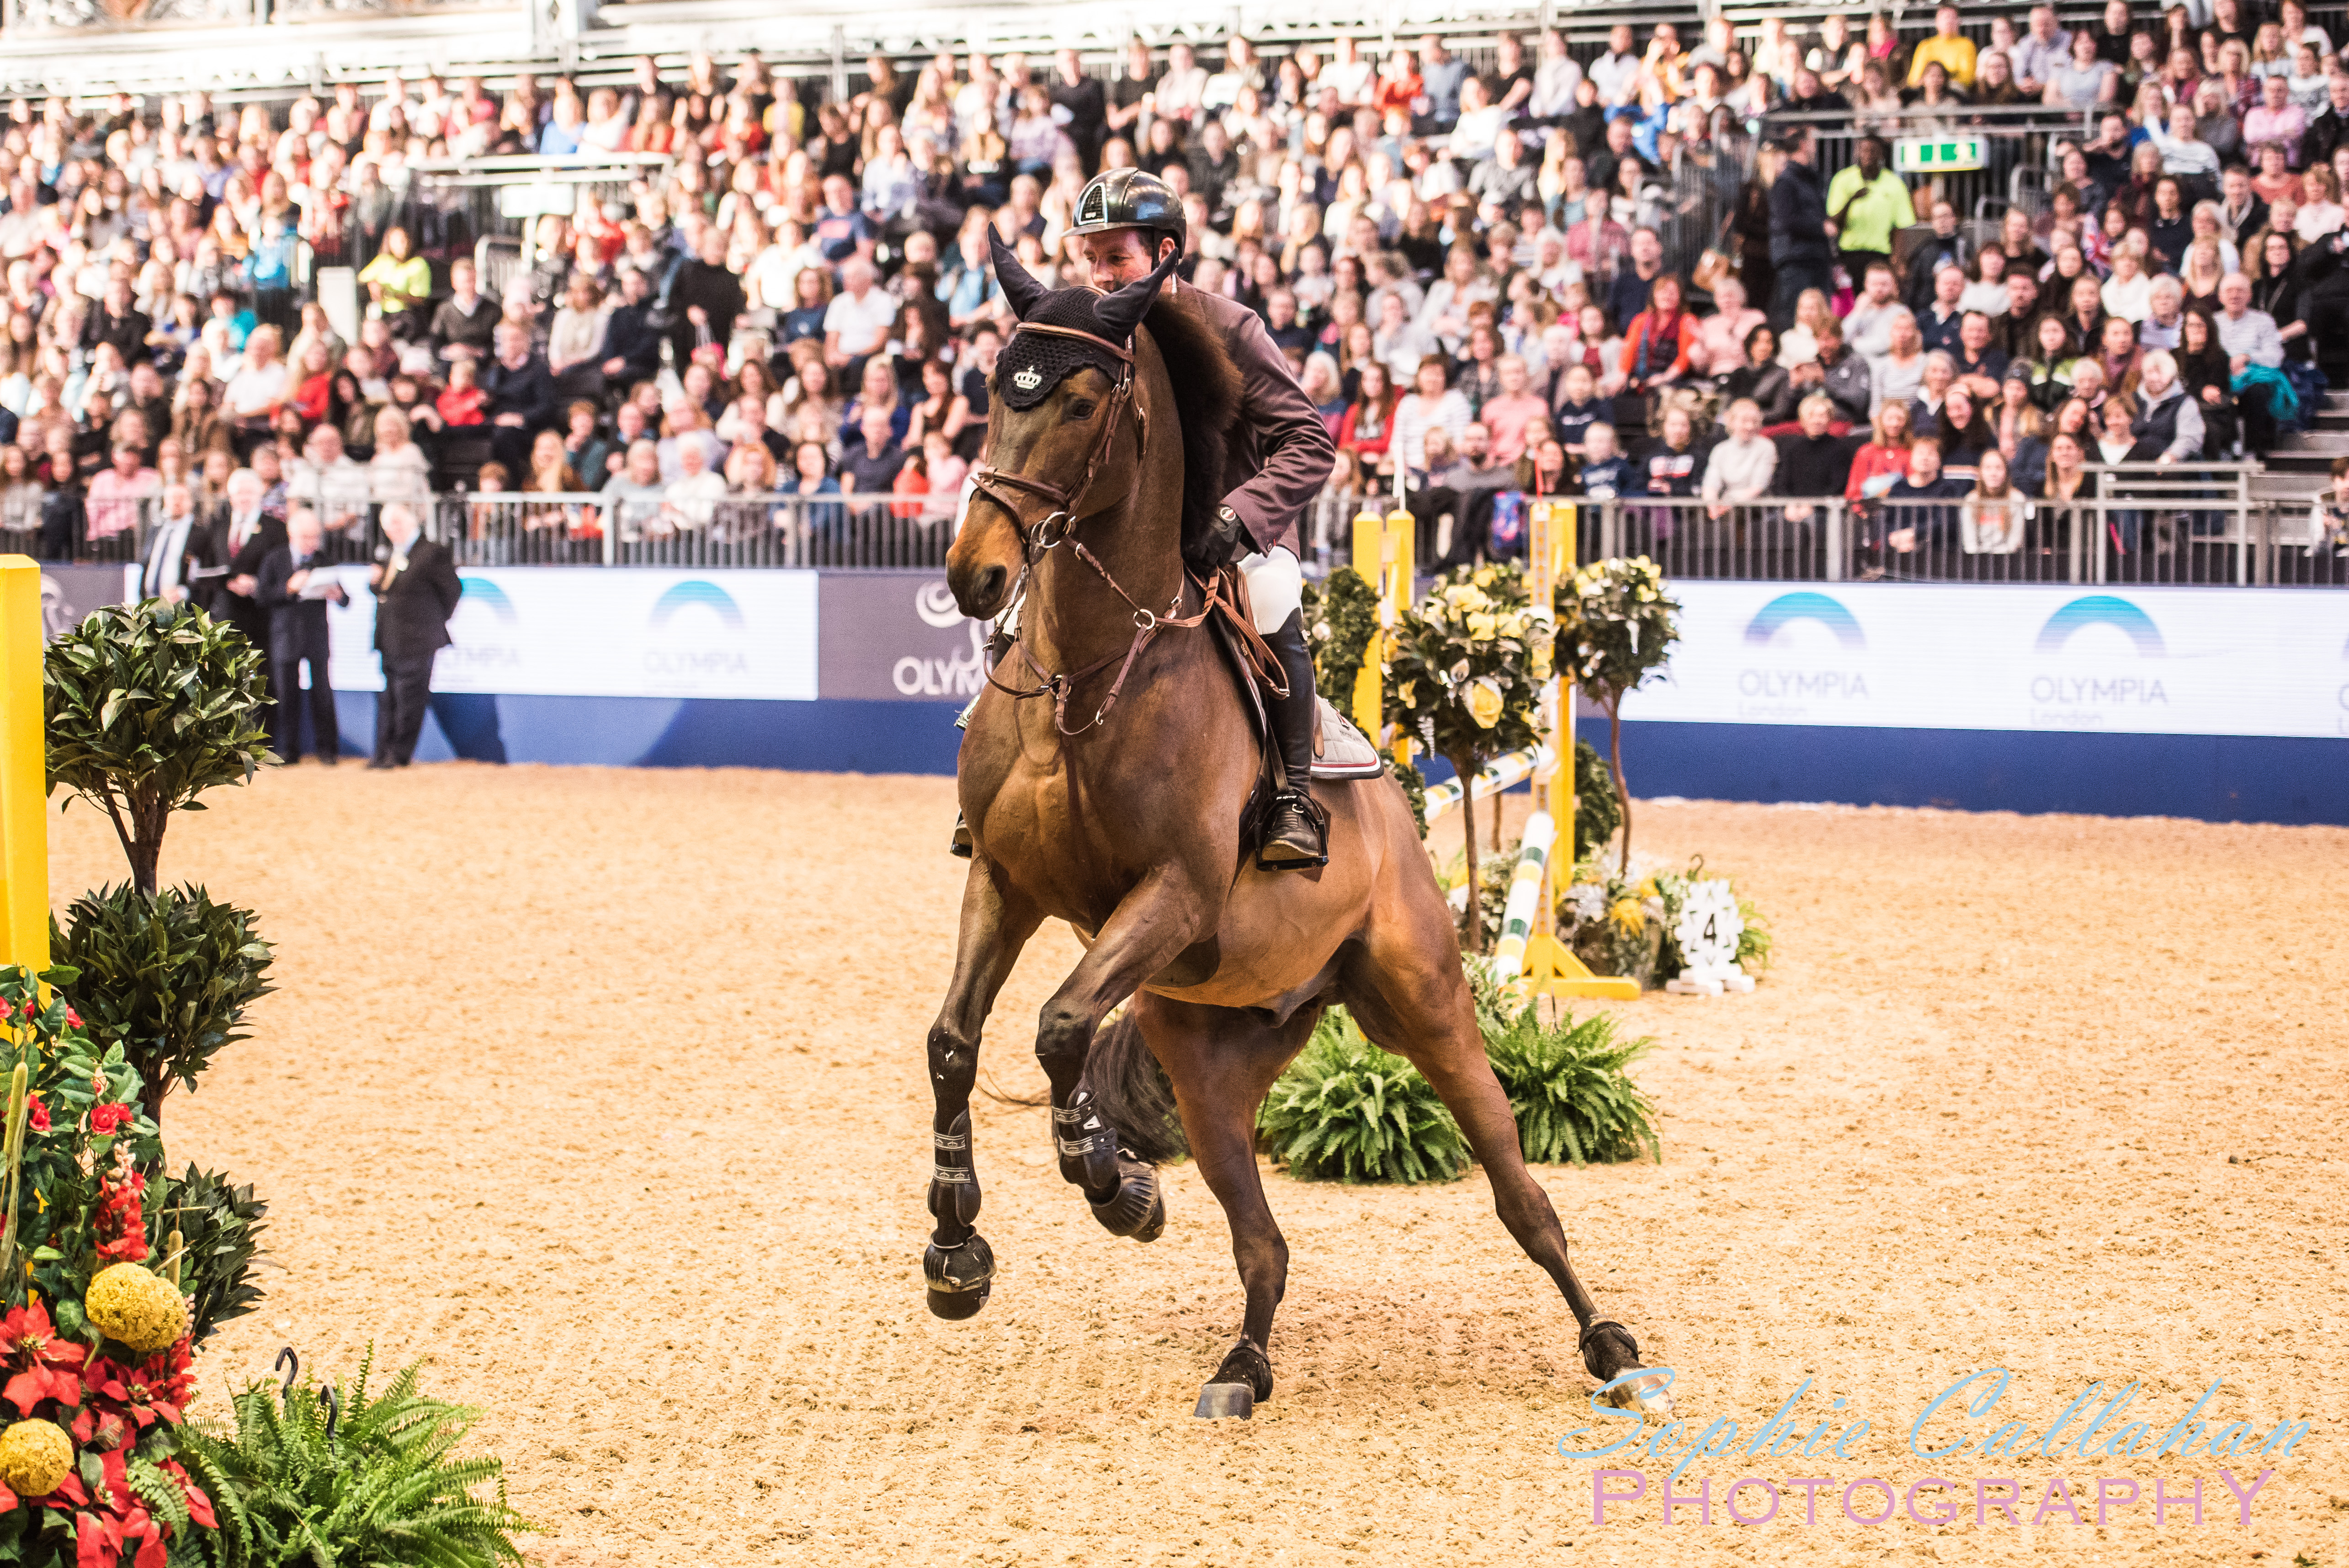 Olympia, London International Horse Show 2017 - Equine and Country Lifestyle Blogger I via sophiecallahanblog.com I #lifestyleblogger #photography #countrylife